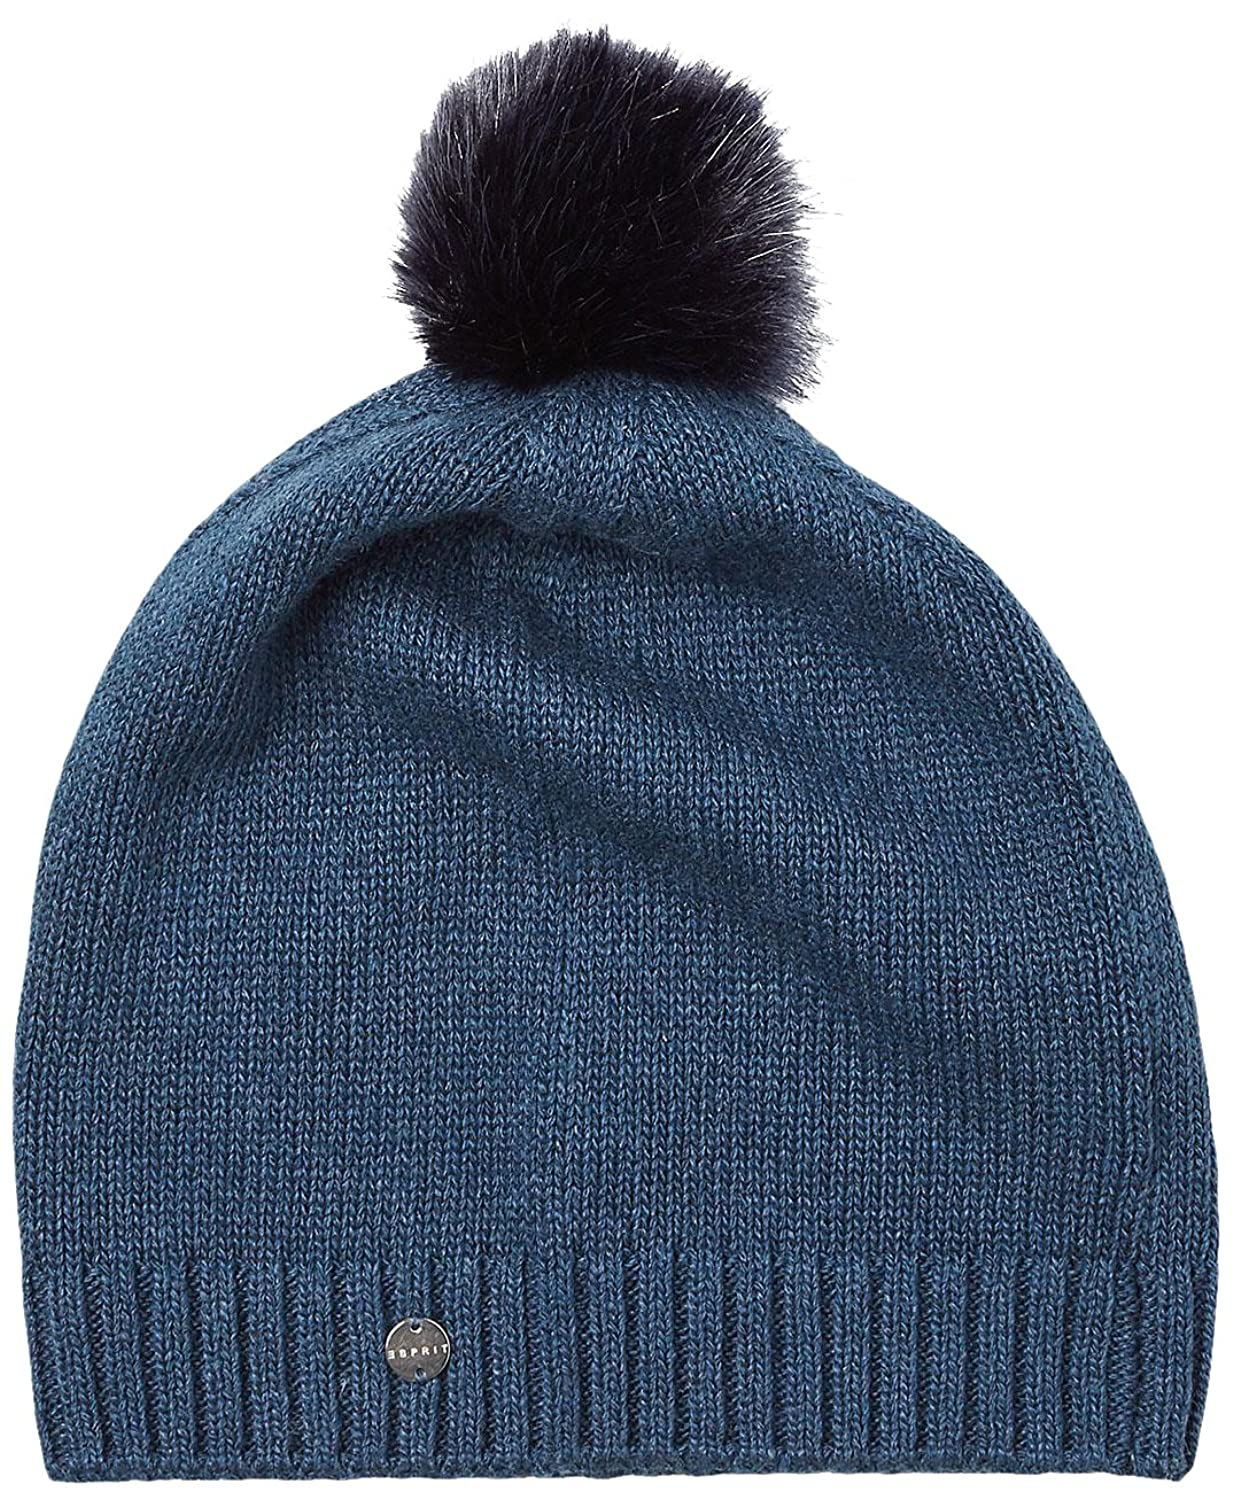 Hilfiger Denim Womens Th Knit Beanie, Multicoloured (Corporate Clrs 901), One Size Tommy Jeans